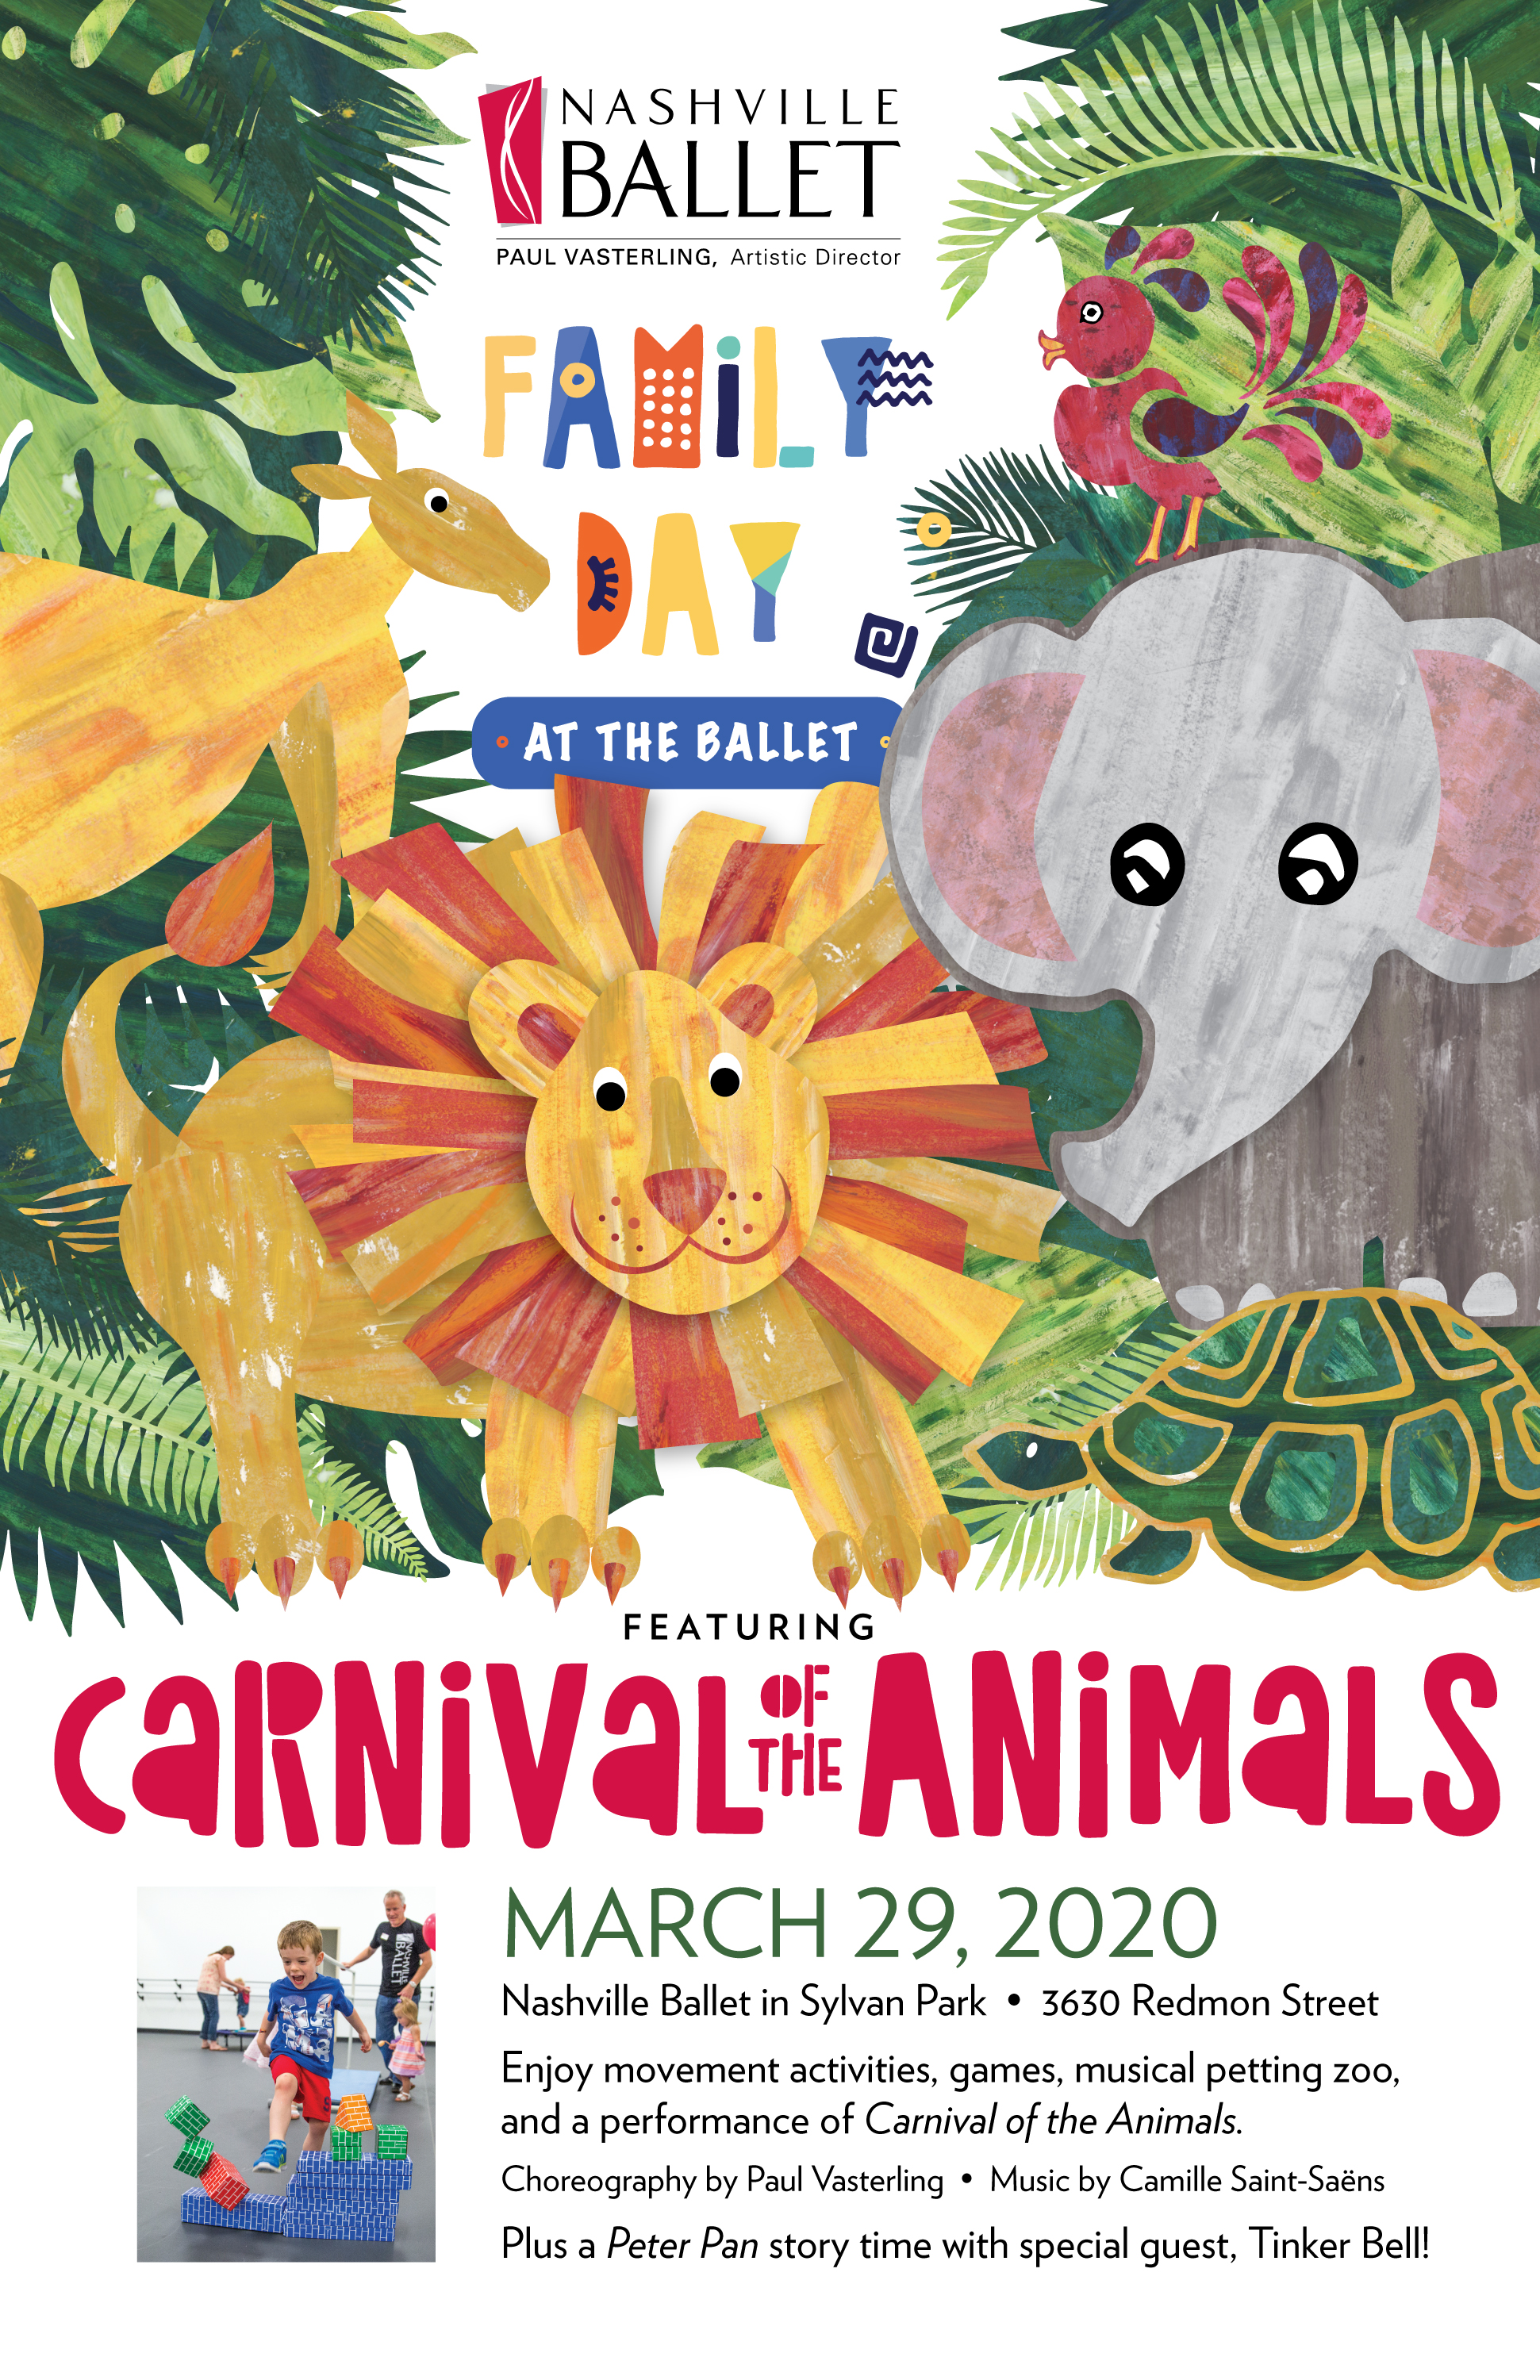 Carnival of Animals poster